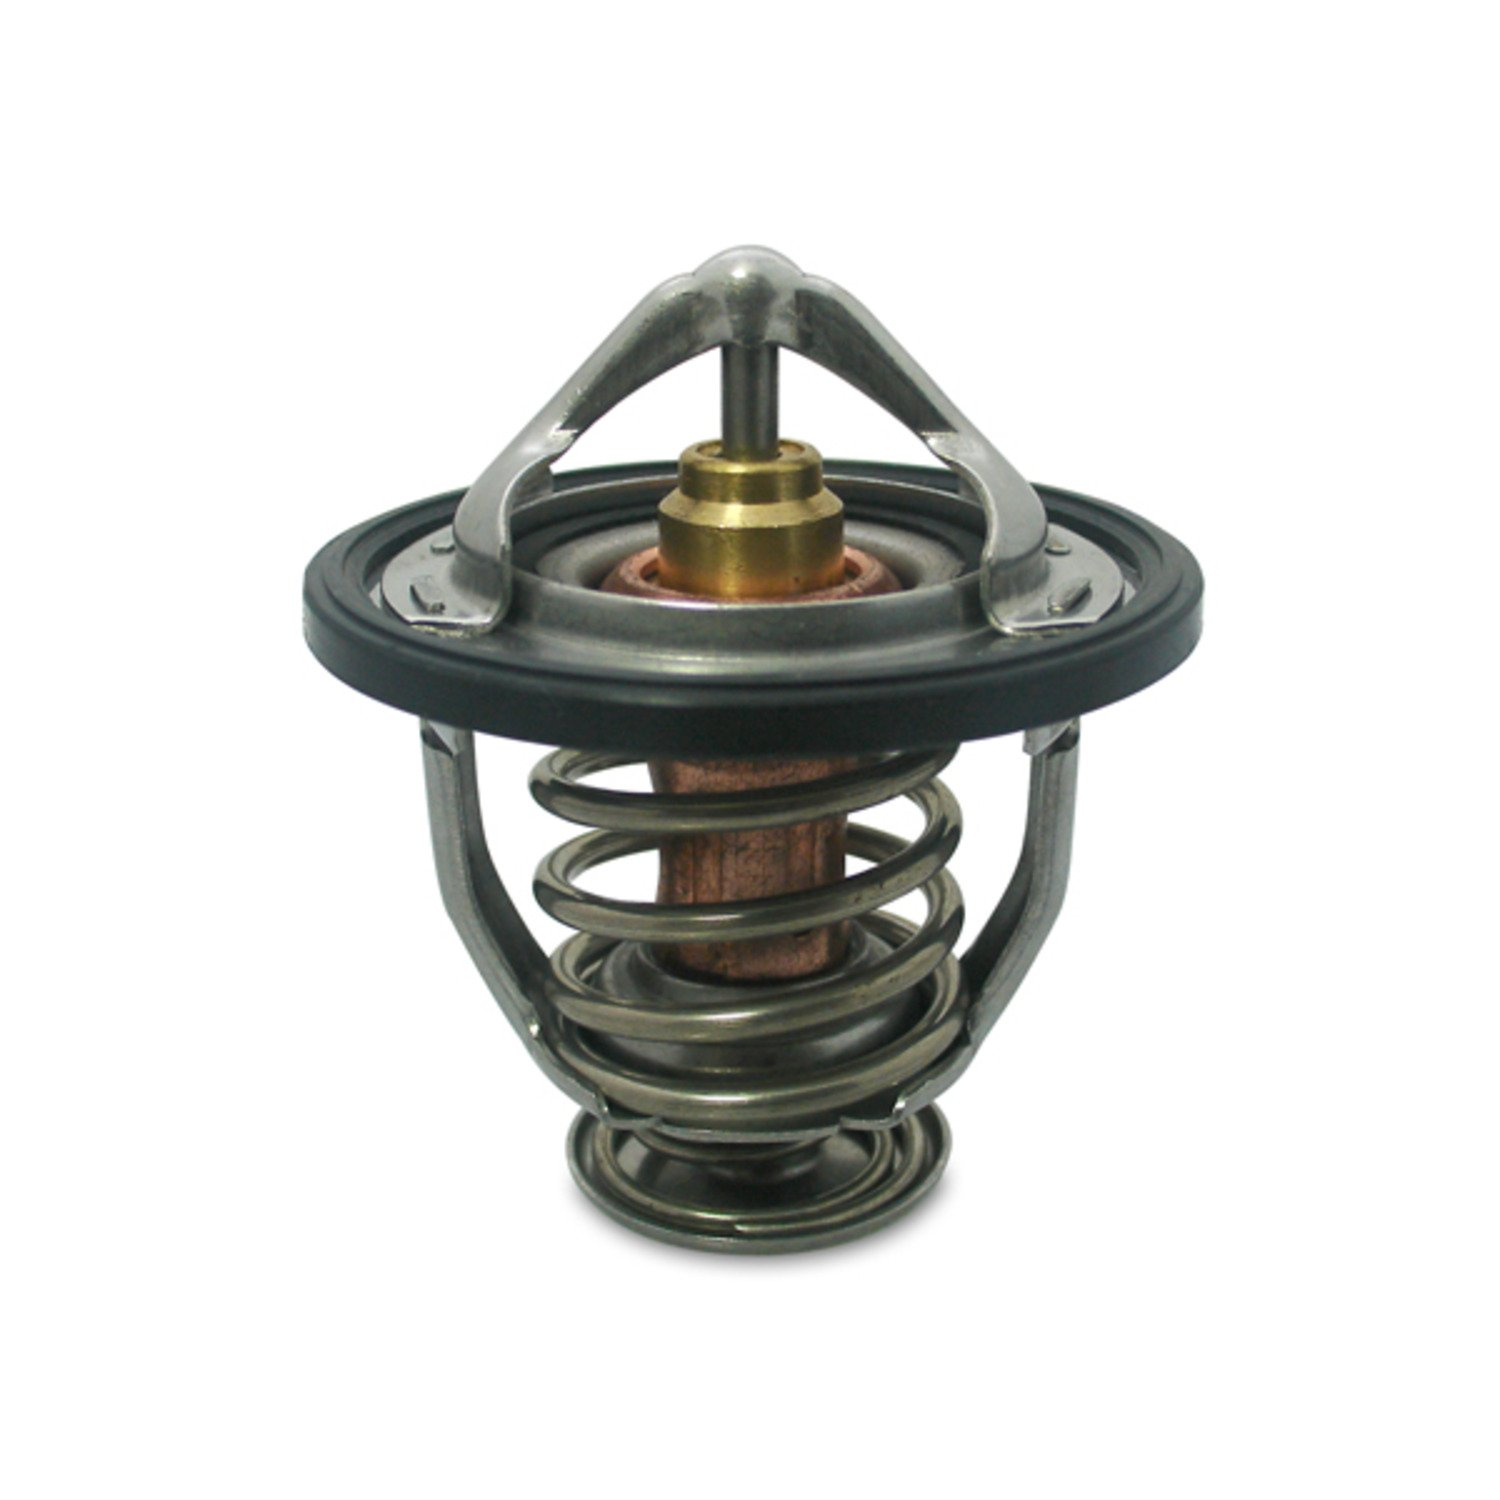 Mishimoto MMTS-TC-05L Toyota MR2 Racing Thermostat, 2000-2005